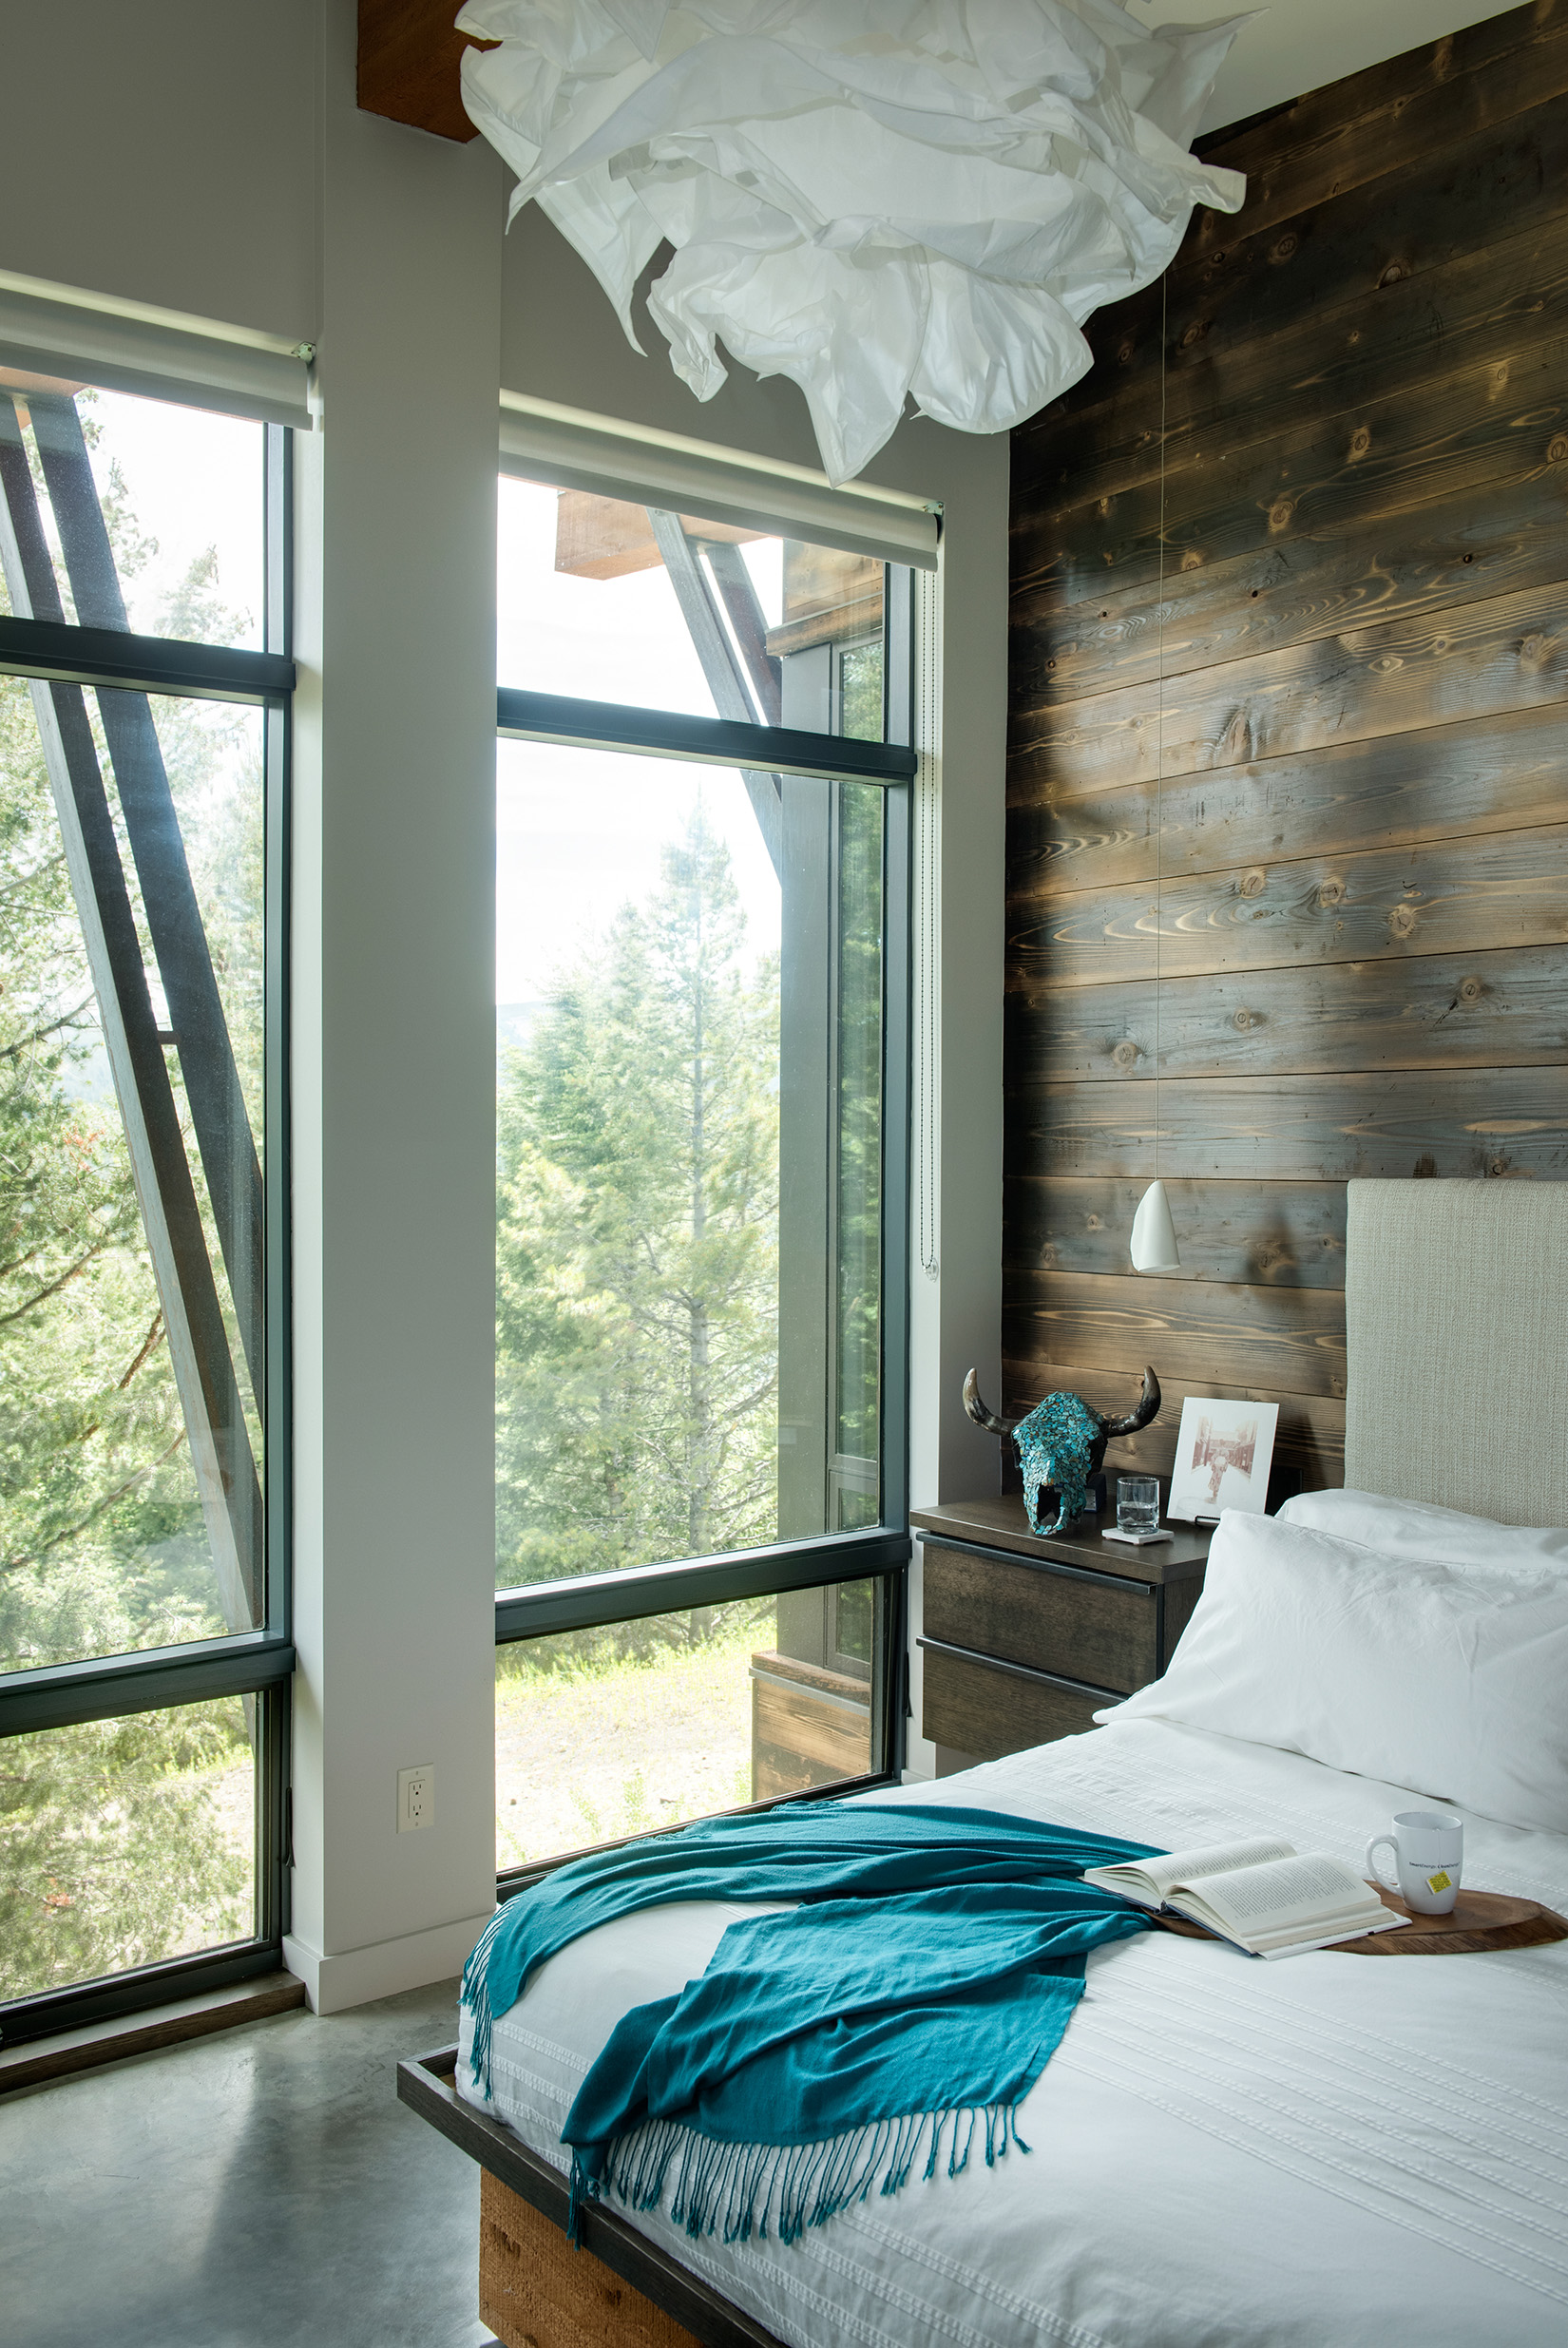 This is a perfect example of contemporary rustic. The exposed wood on the wall is stunning and is a great use of raw, natural elements. The burnt style is known as Shou Sugi Ban and is just stunning. Architect -  Reid Smith Architects , Builder -  Big Sky Home Builders